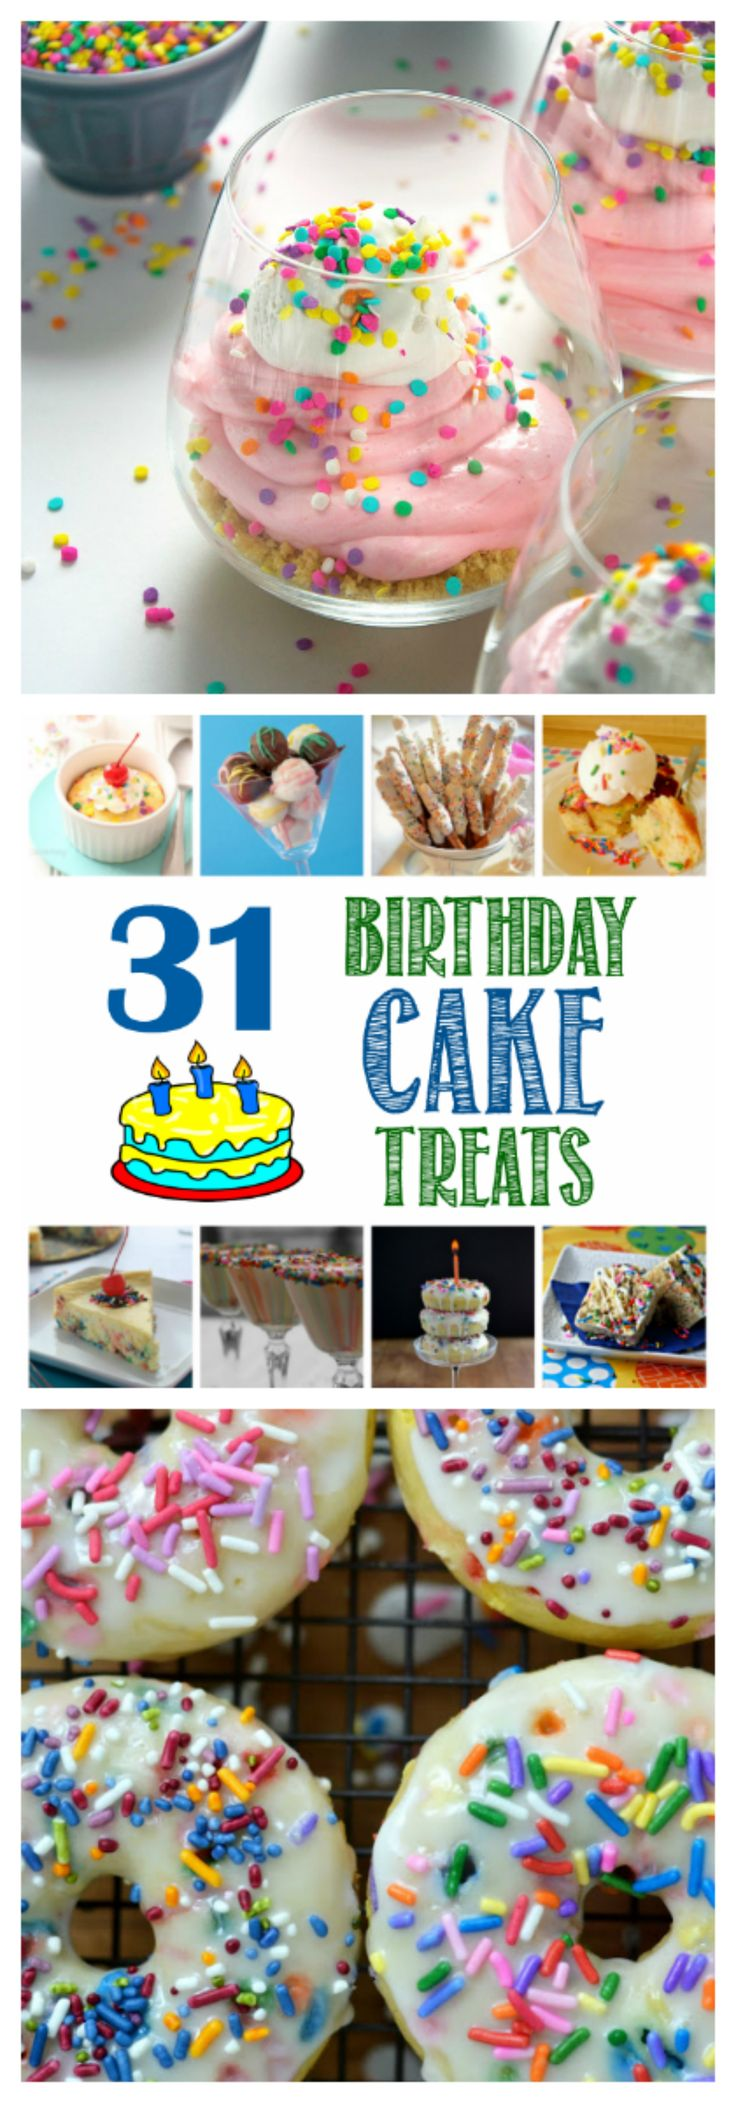 31 Birthday Cake Treats   DizzyBusyandHungry.com - Join me in celebrating my birthday all month long with 31 birthday cake treats - one for each day!